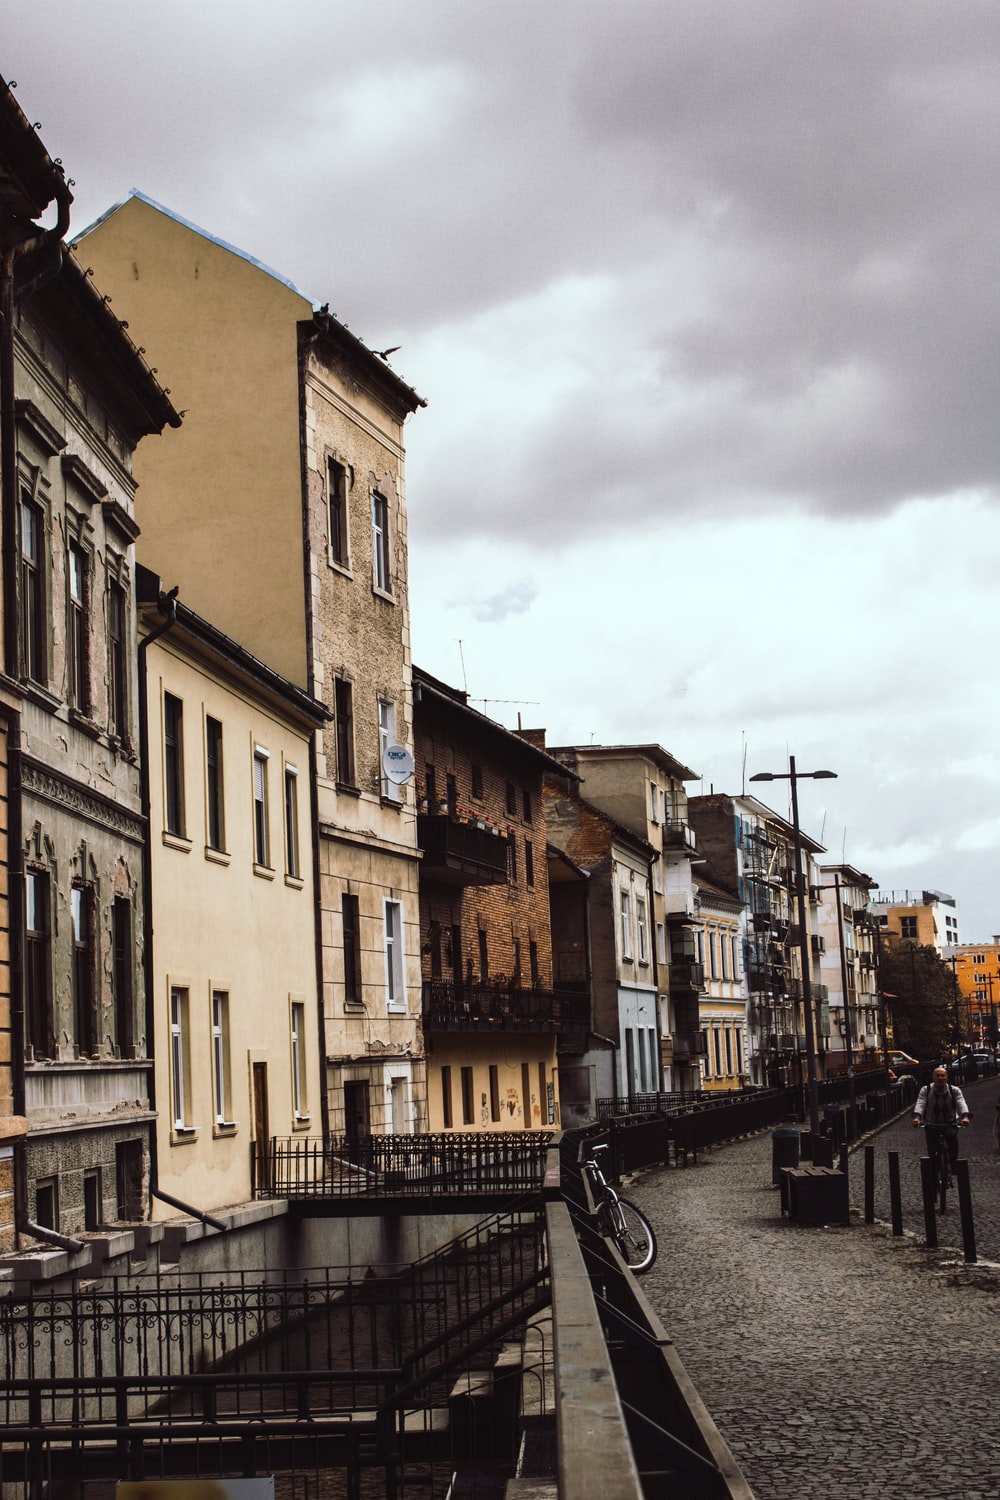 brown buildings under white clouds